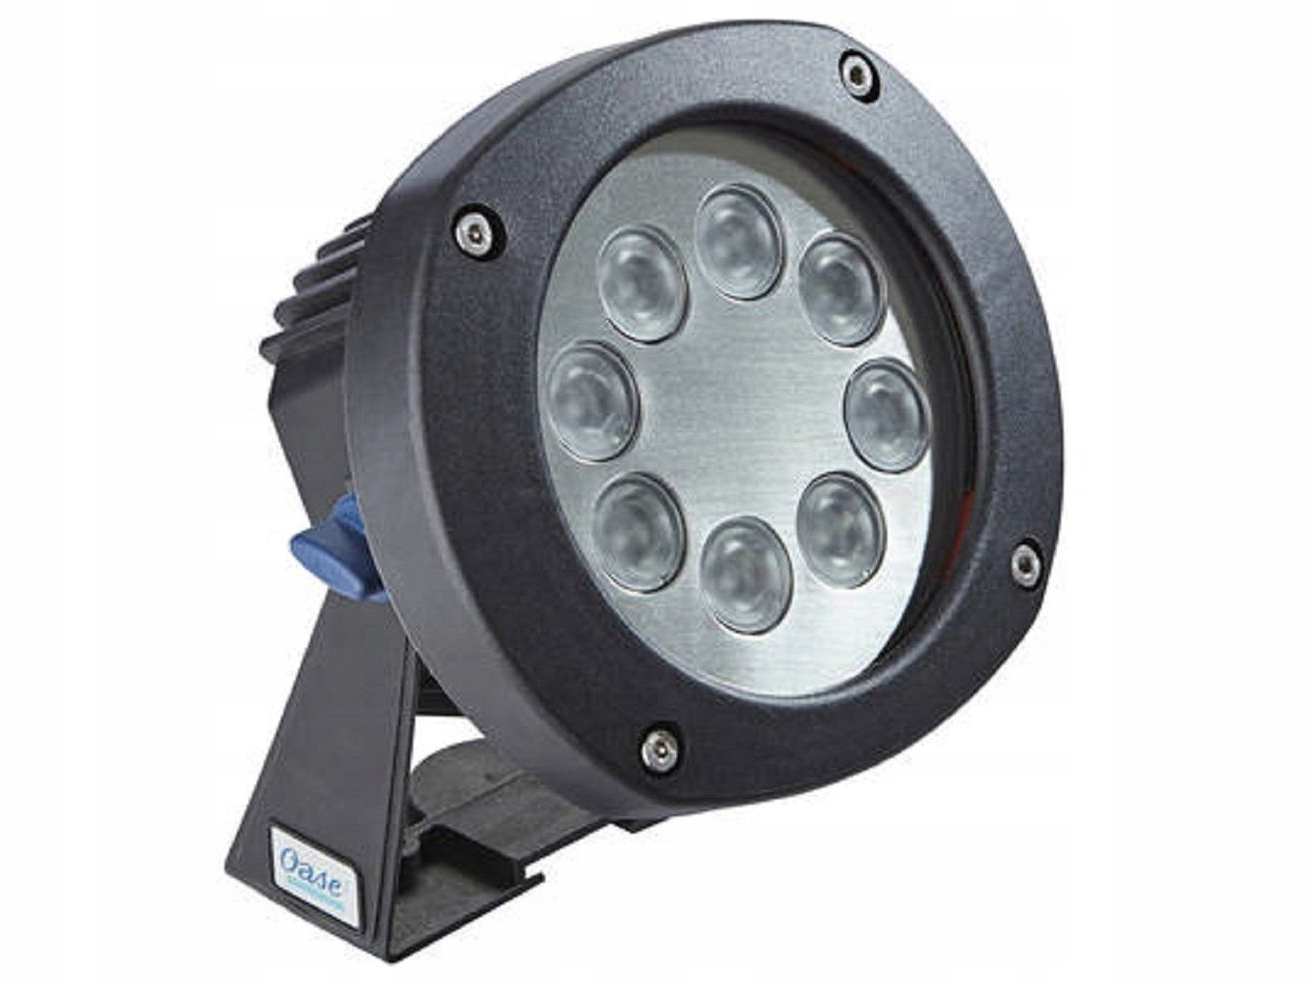 Oase LunAqua Power LED XL Spot 3000 reflektor LED